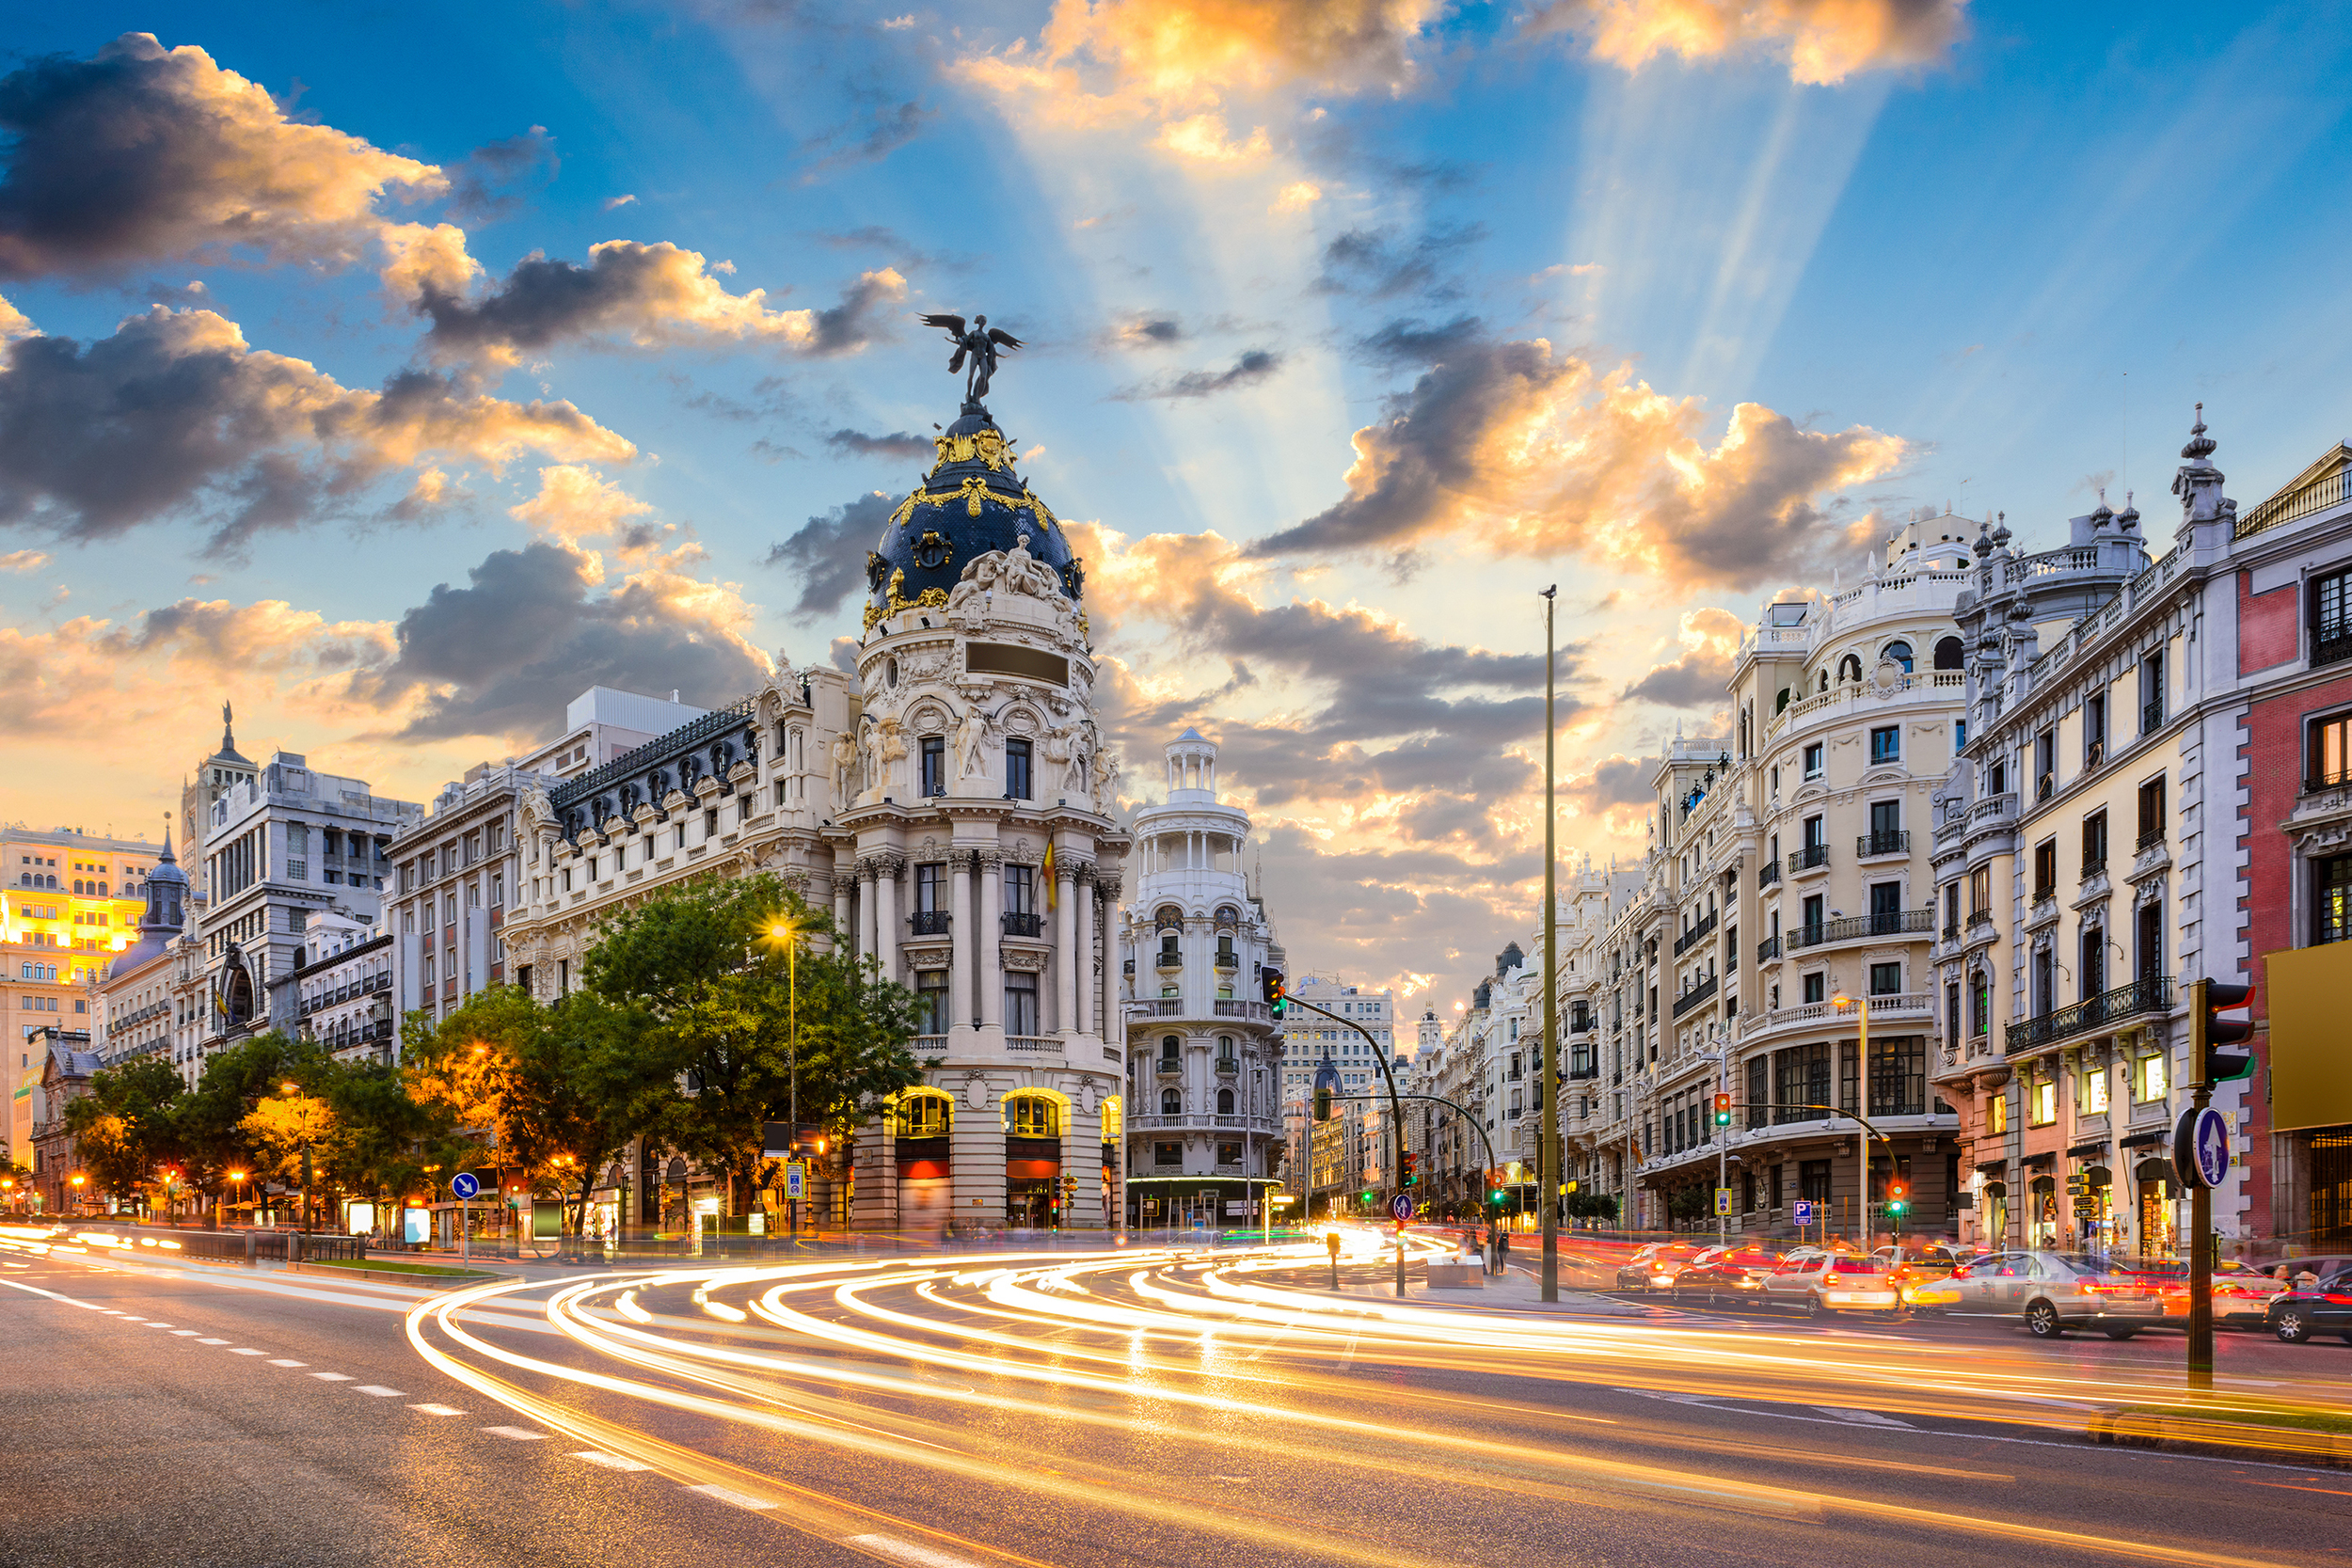 Buildings in Madrid at sunrise